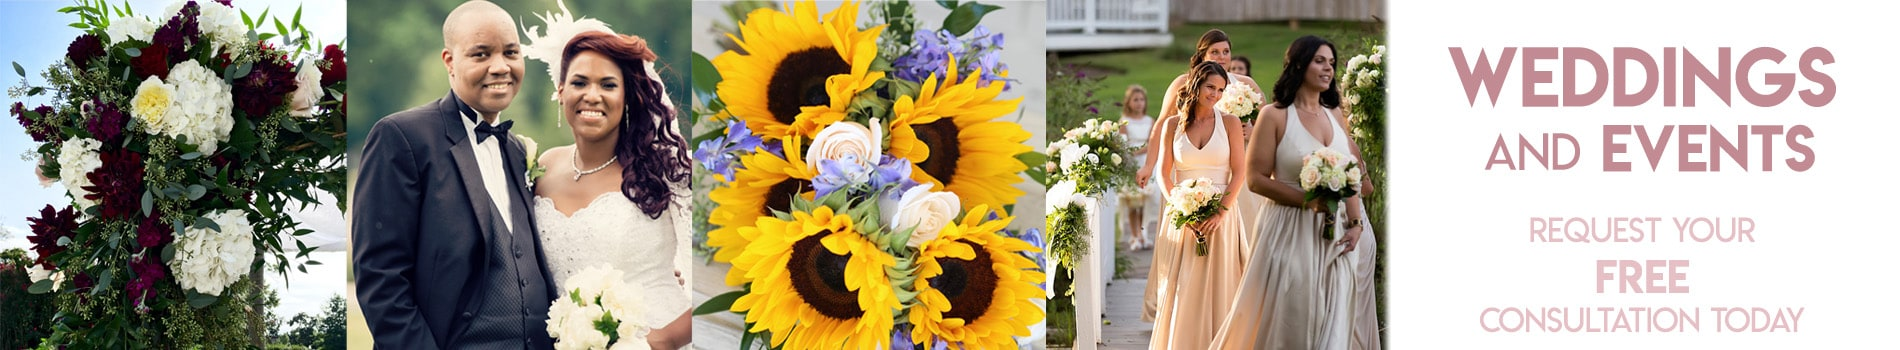 wedding flower arrangements Baltimore Maryland